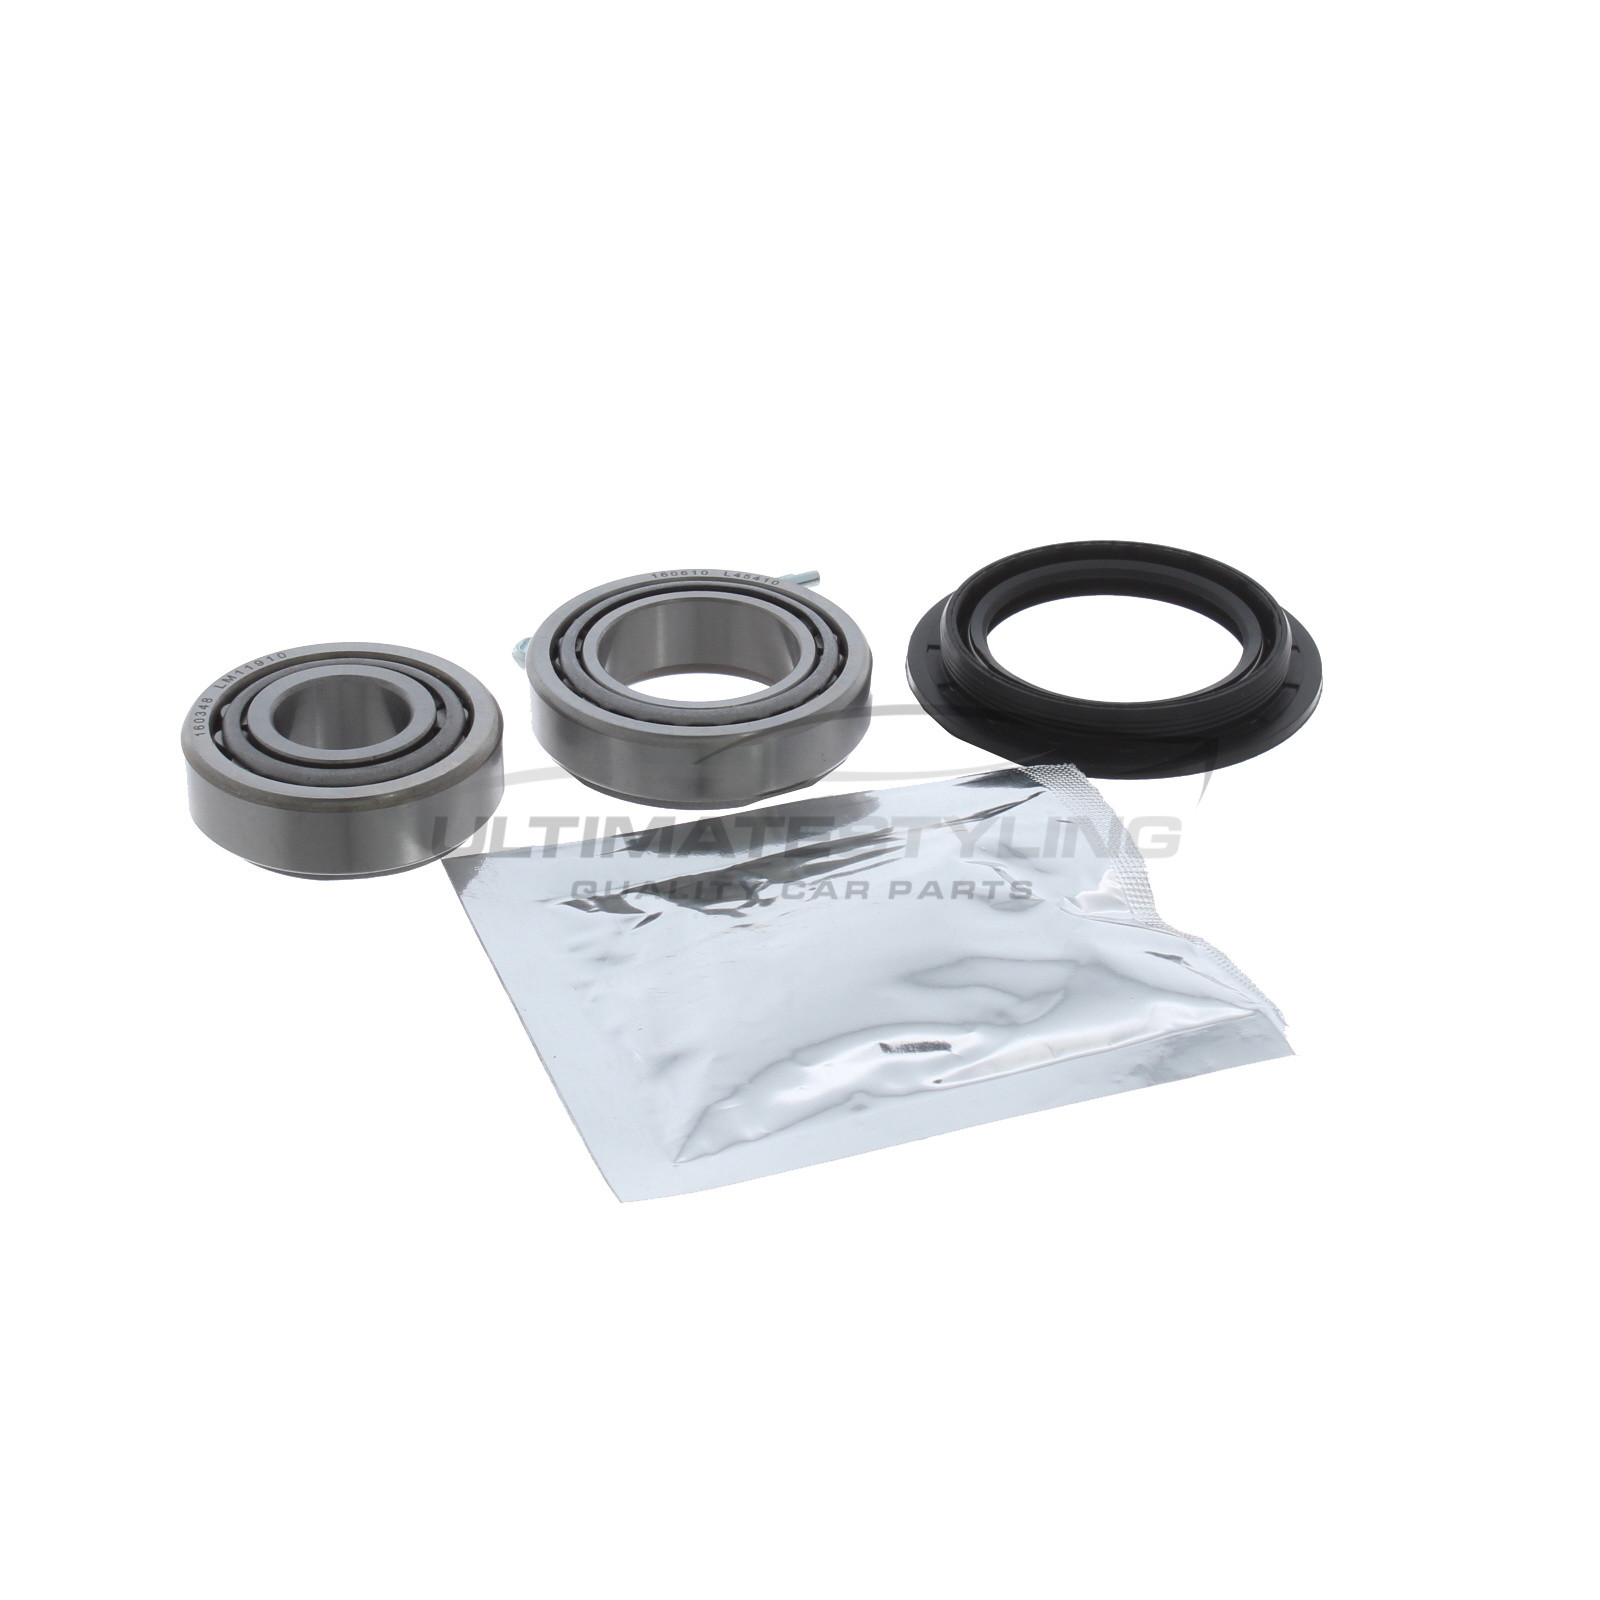 Audi 80 / 90 / 100 / 200 / A4 / A6 / Cabriolet / Coupe, LDV 200, Volkswagen Caddy Wheel Bearing Kit - Rear